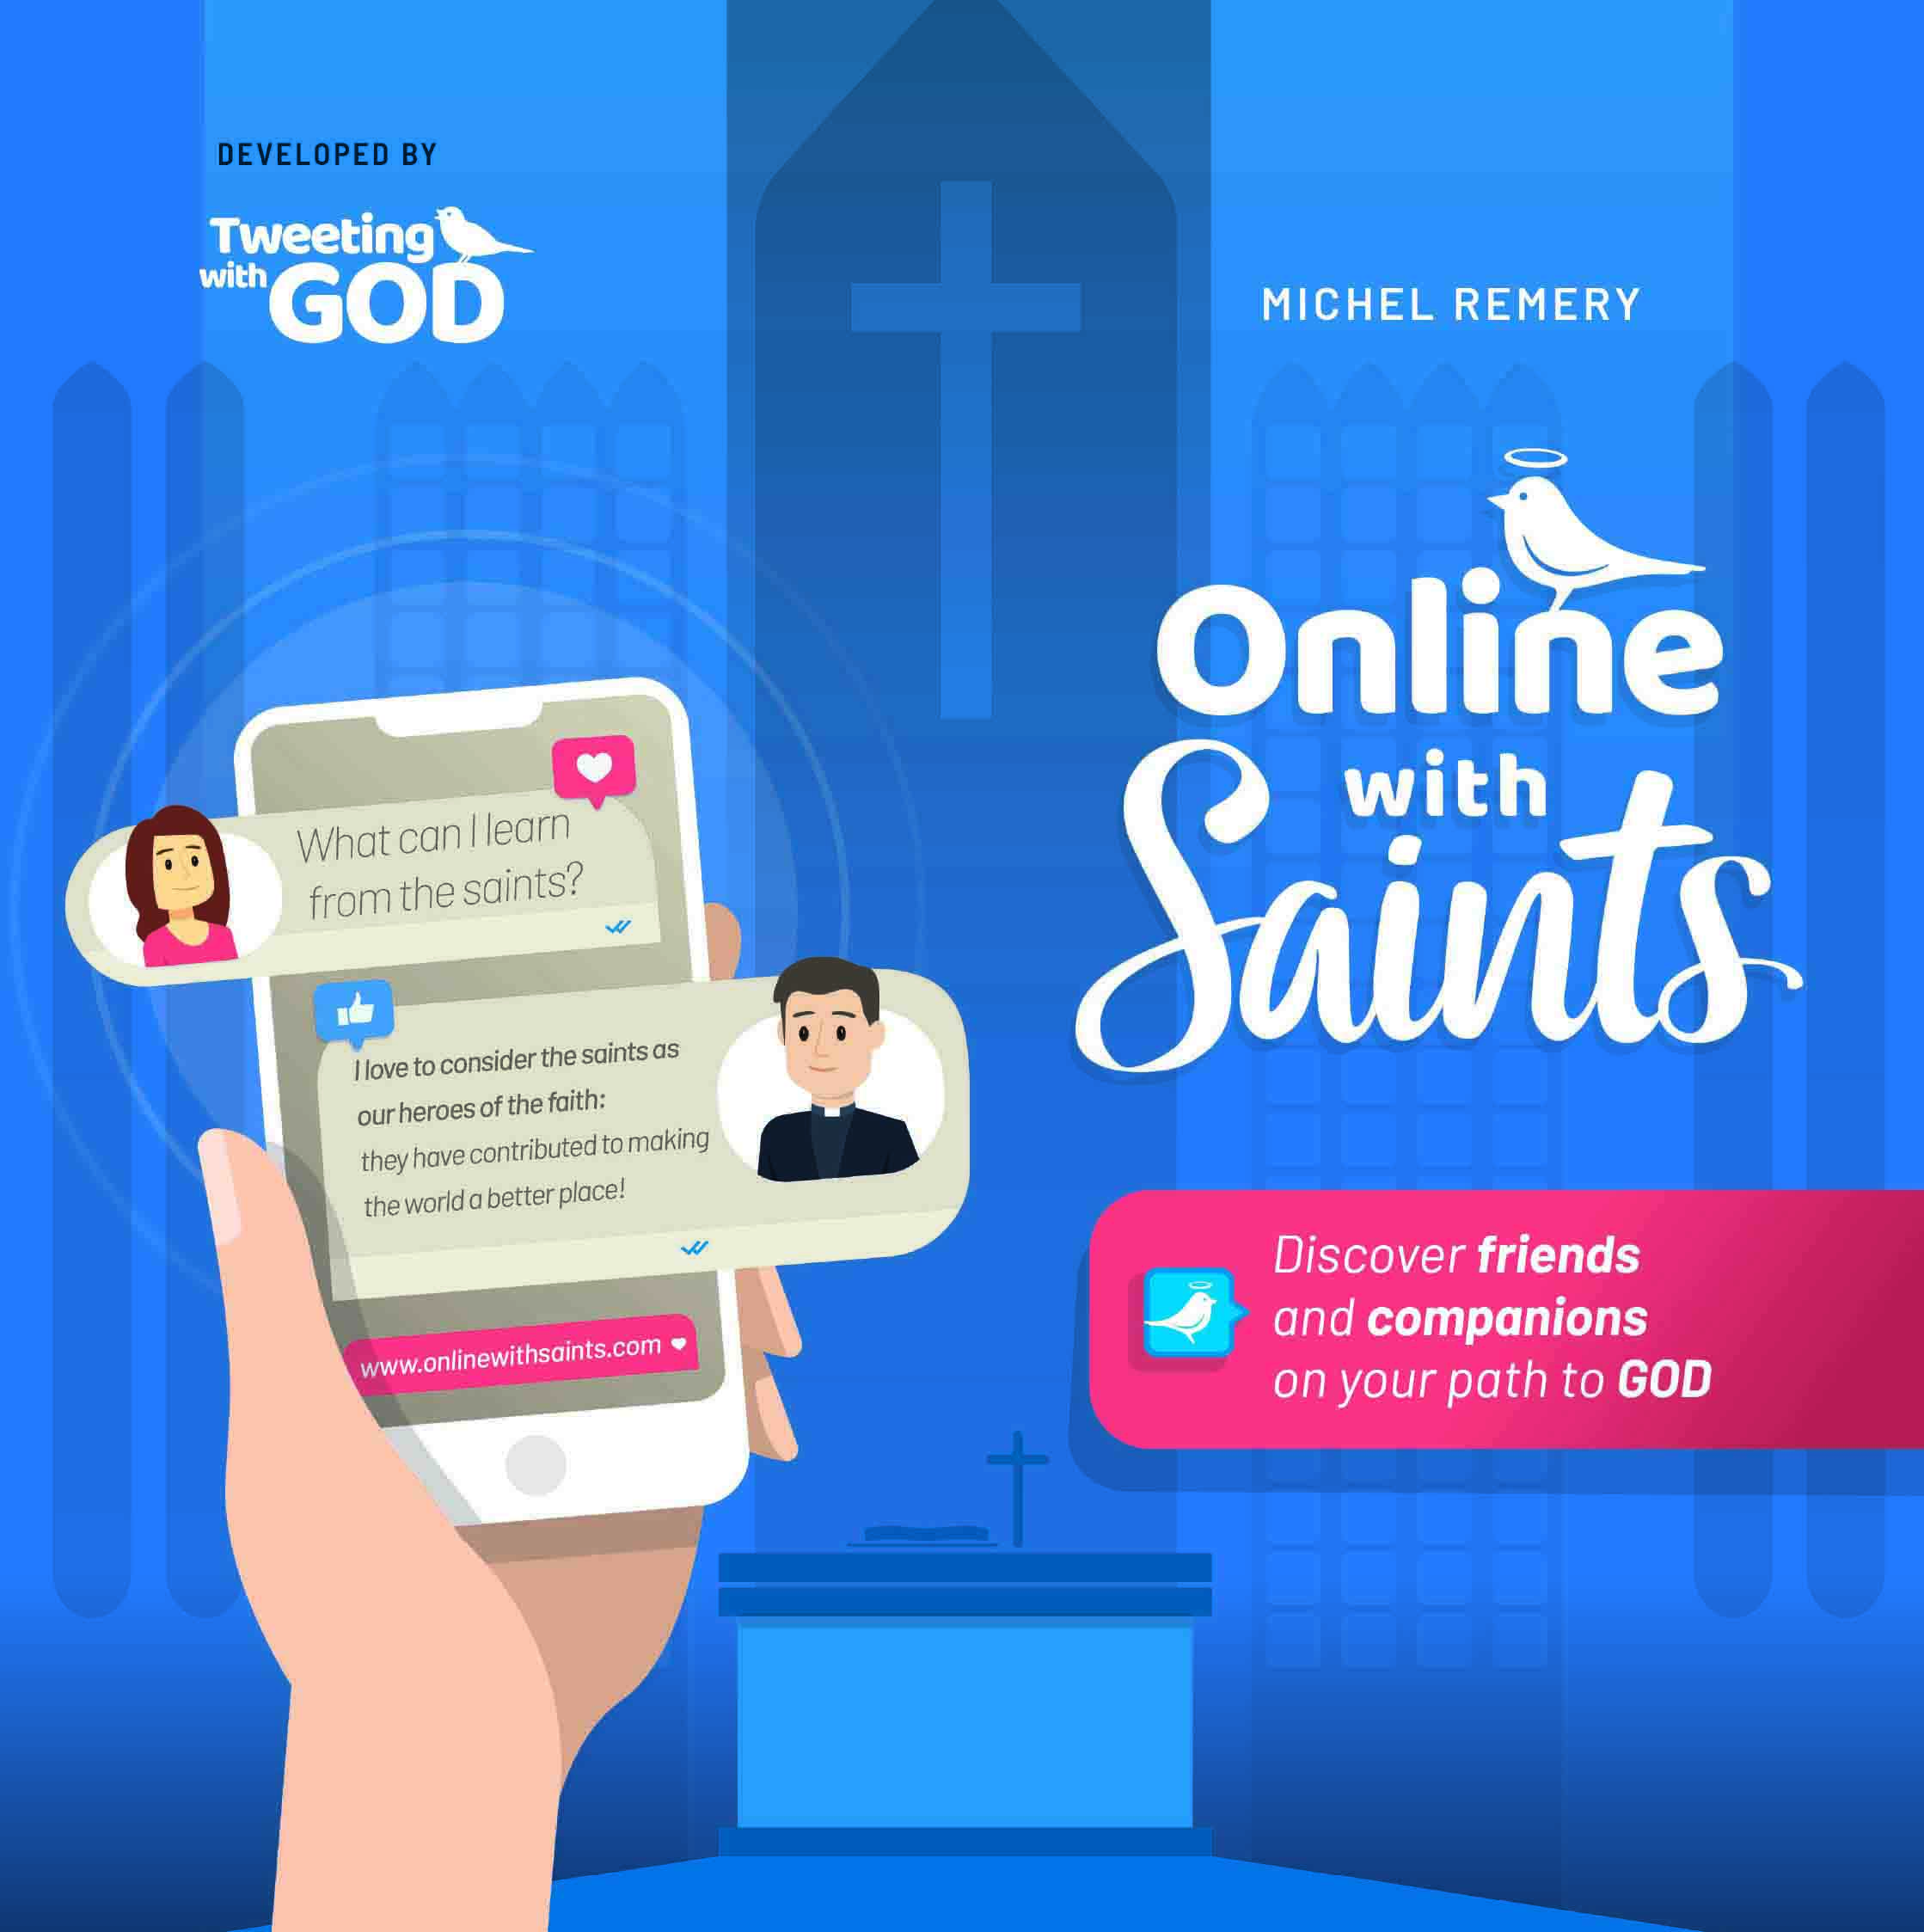 Online with Saints Discover friends and companions on your path to God